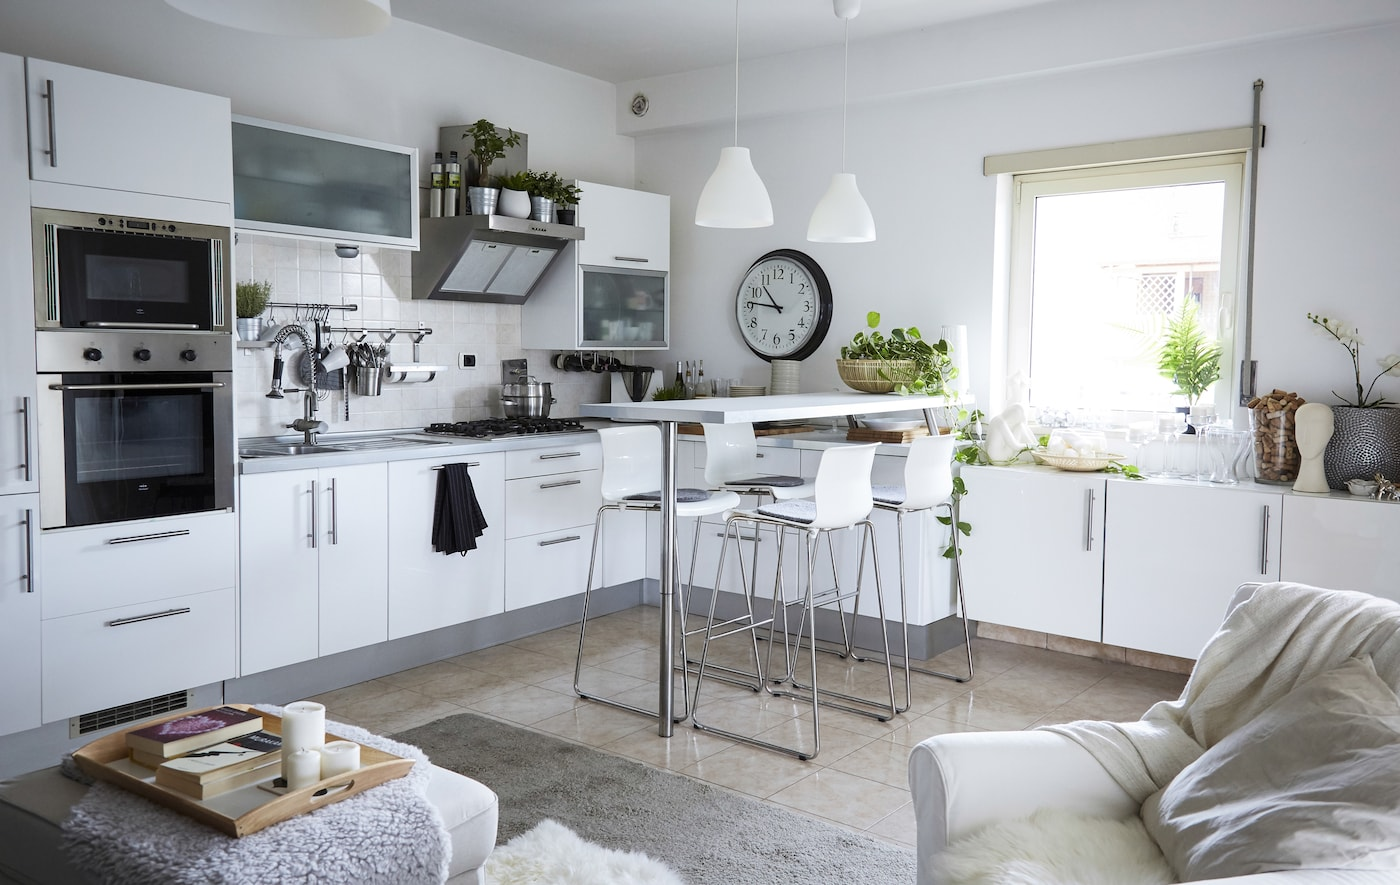 Take a tour of Elisabetta's calming white and grey home.